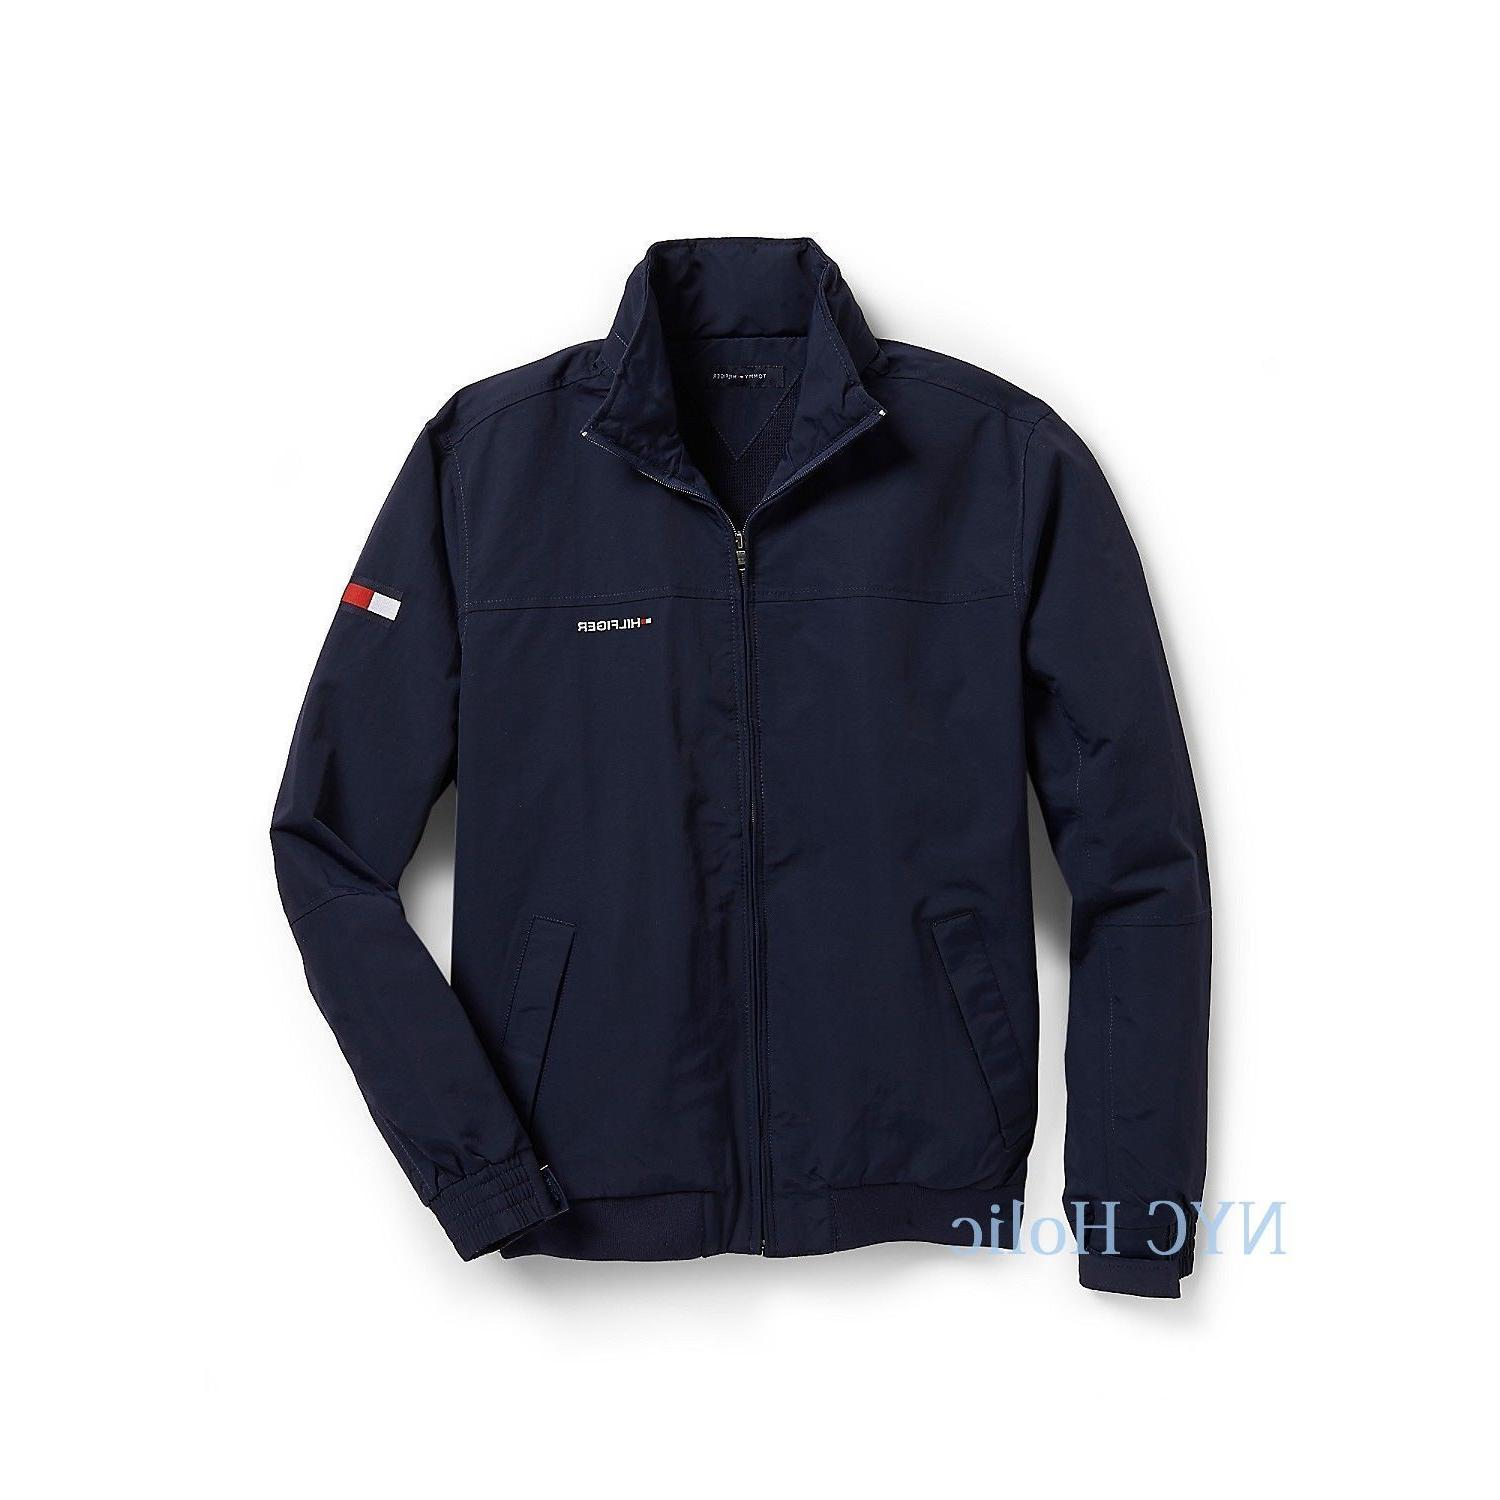 New Tommy Yacht Jacket Navy All Sizes Water